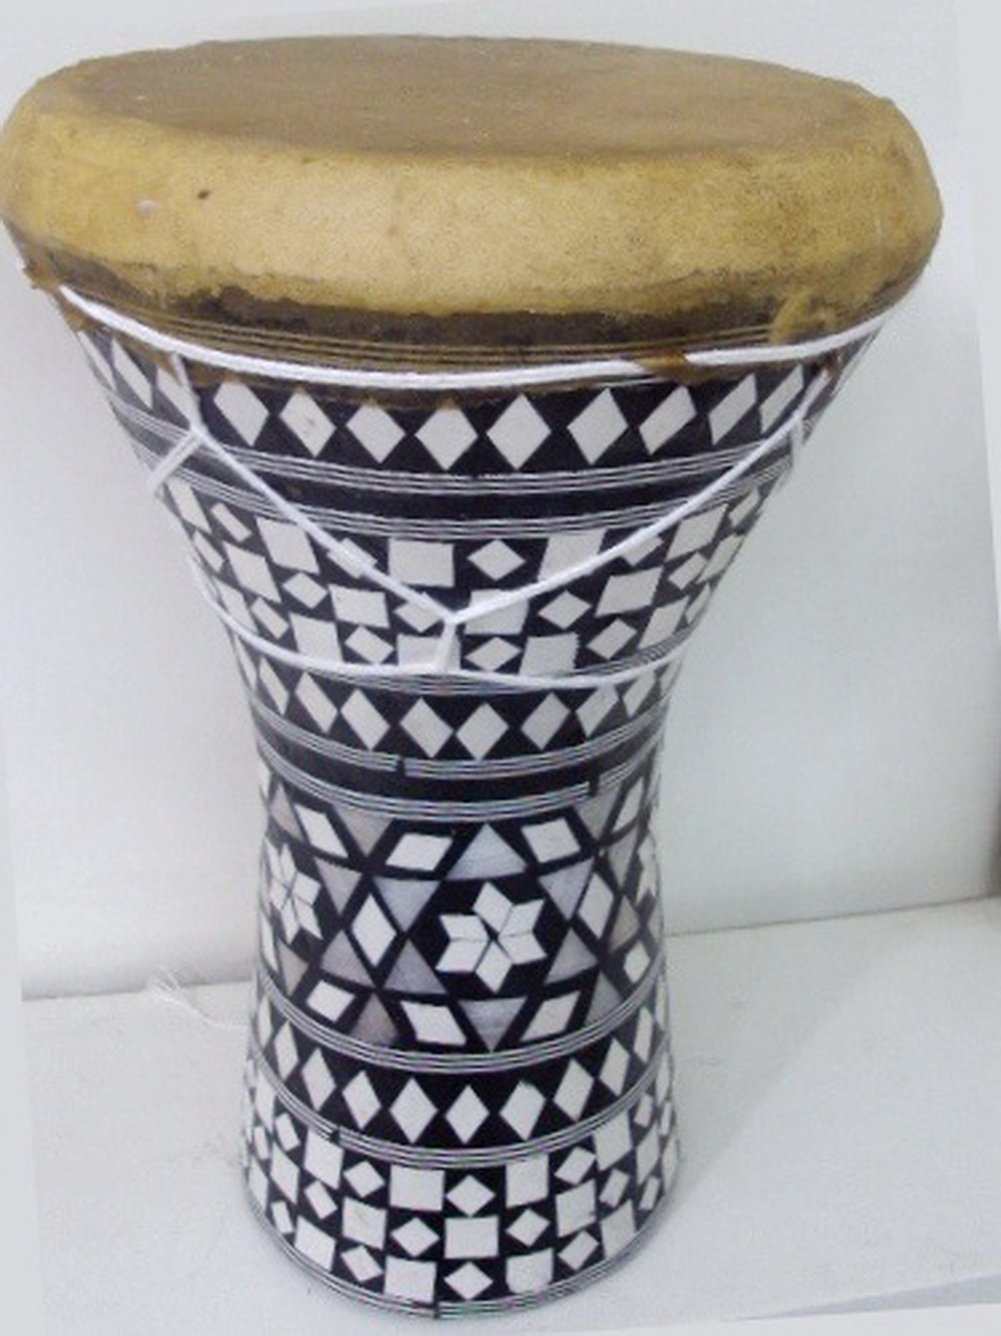 "1PCS Large Egyptian Wooden Tabla Drum Doumbek Goat Skin Inlaid Handmade 11"" 71Ff6XJ2LCL"